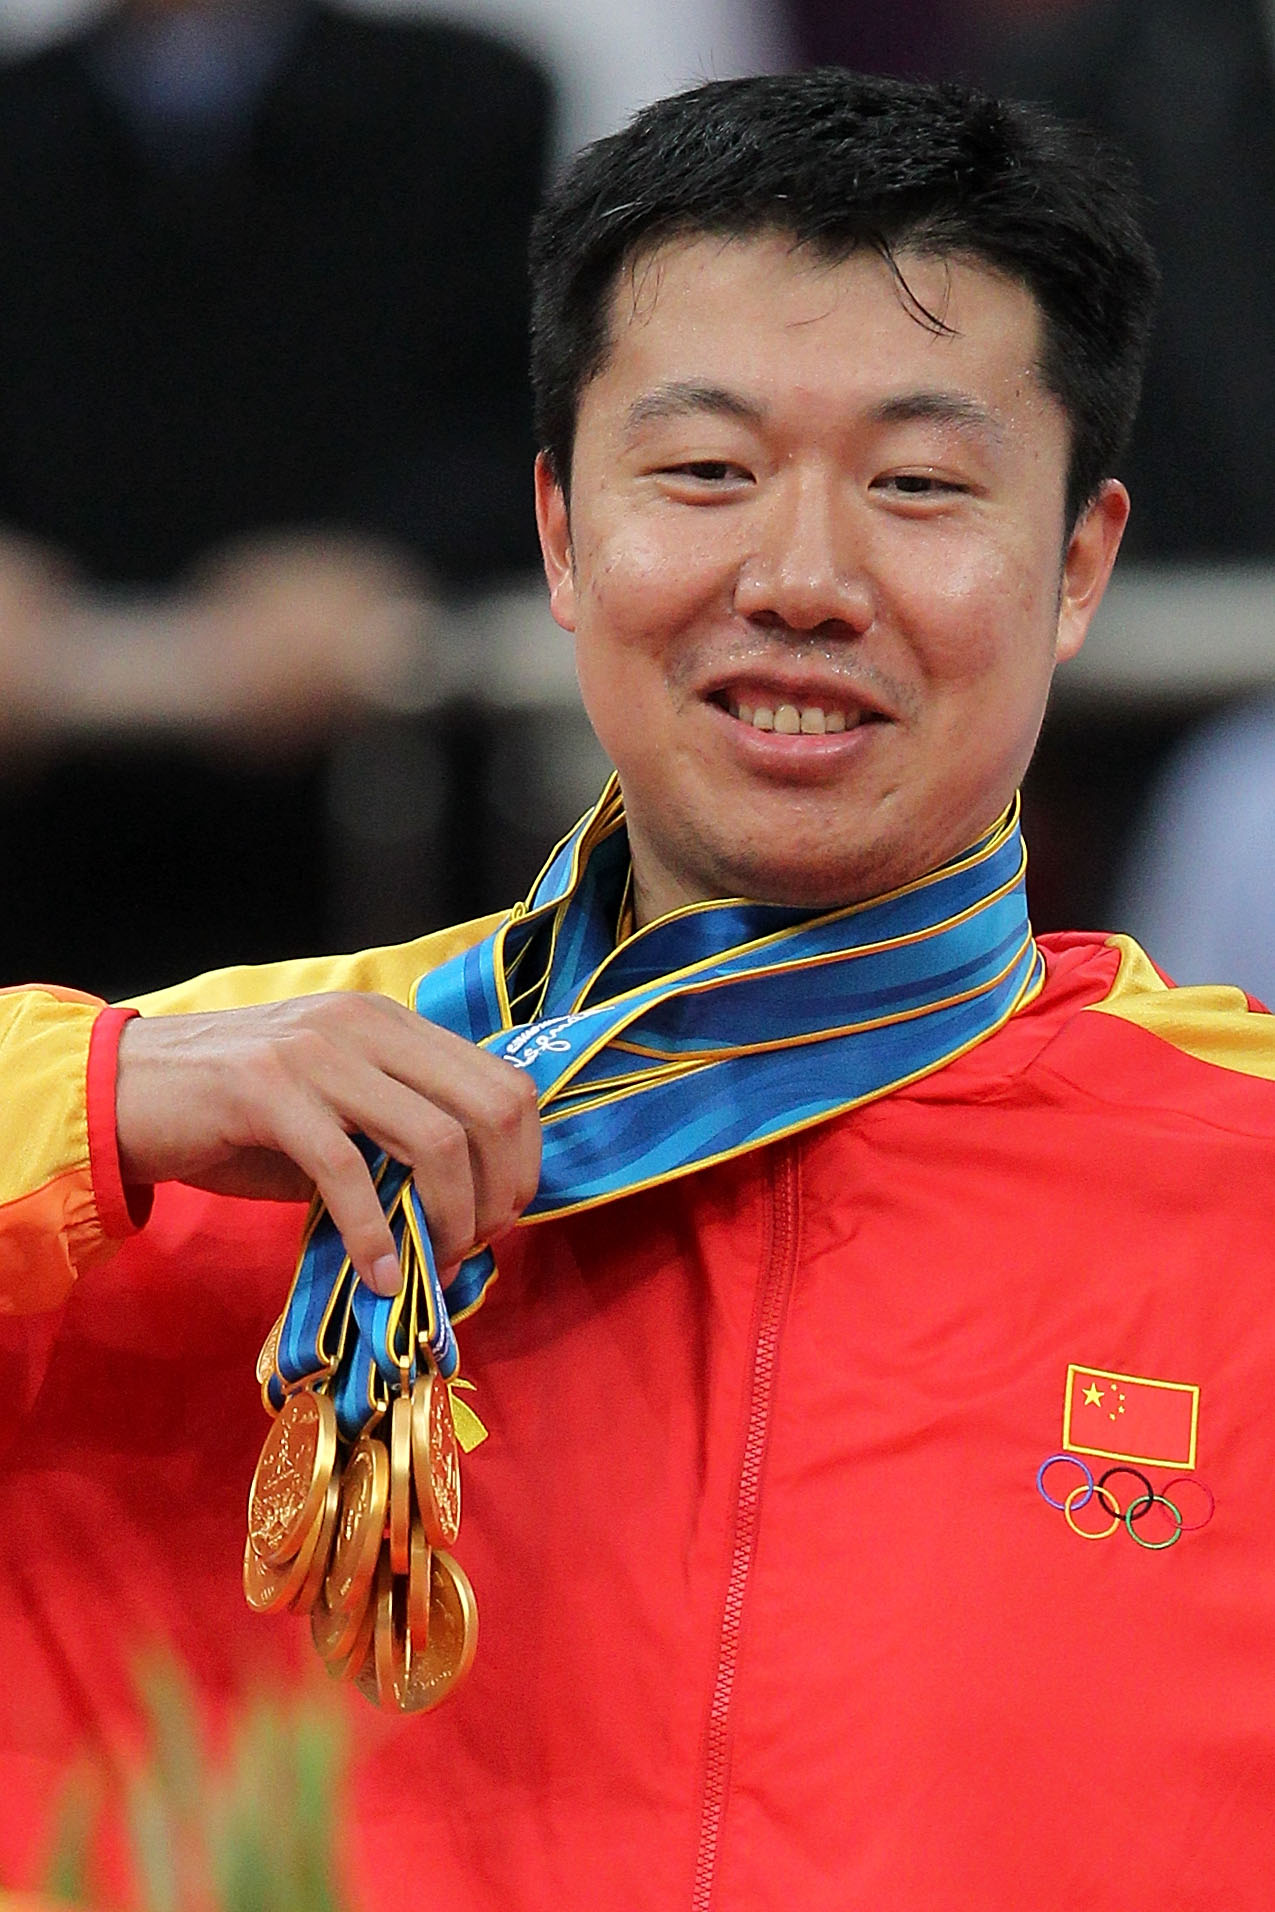 GUANGZHOU, CHINA - NOVEMBER 26:  Wang Zhizhi #14 of China is given all the medals by his teammates to wear after China wins the gold medal by defeating South Korea 77-71 in the men's gold medal basketball game at the Guangzhou International Sports Arena d